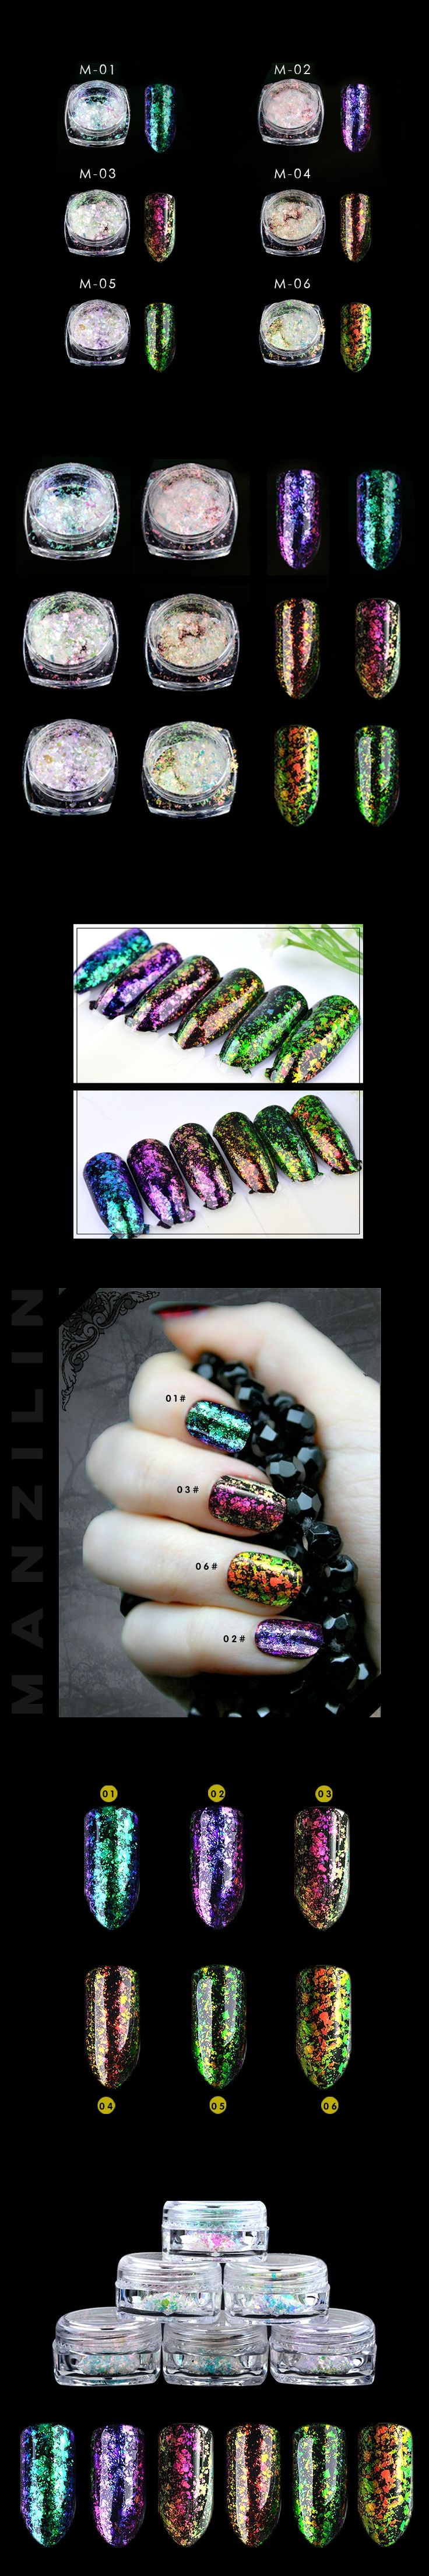 123 best Nails & Tools images on Pinterest